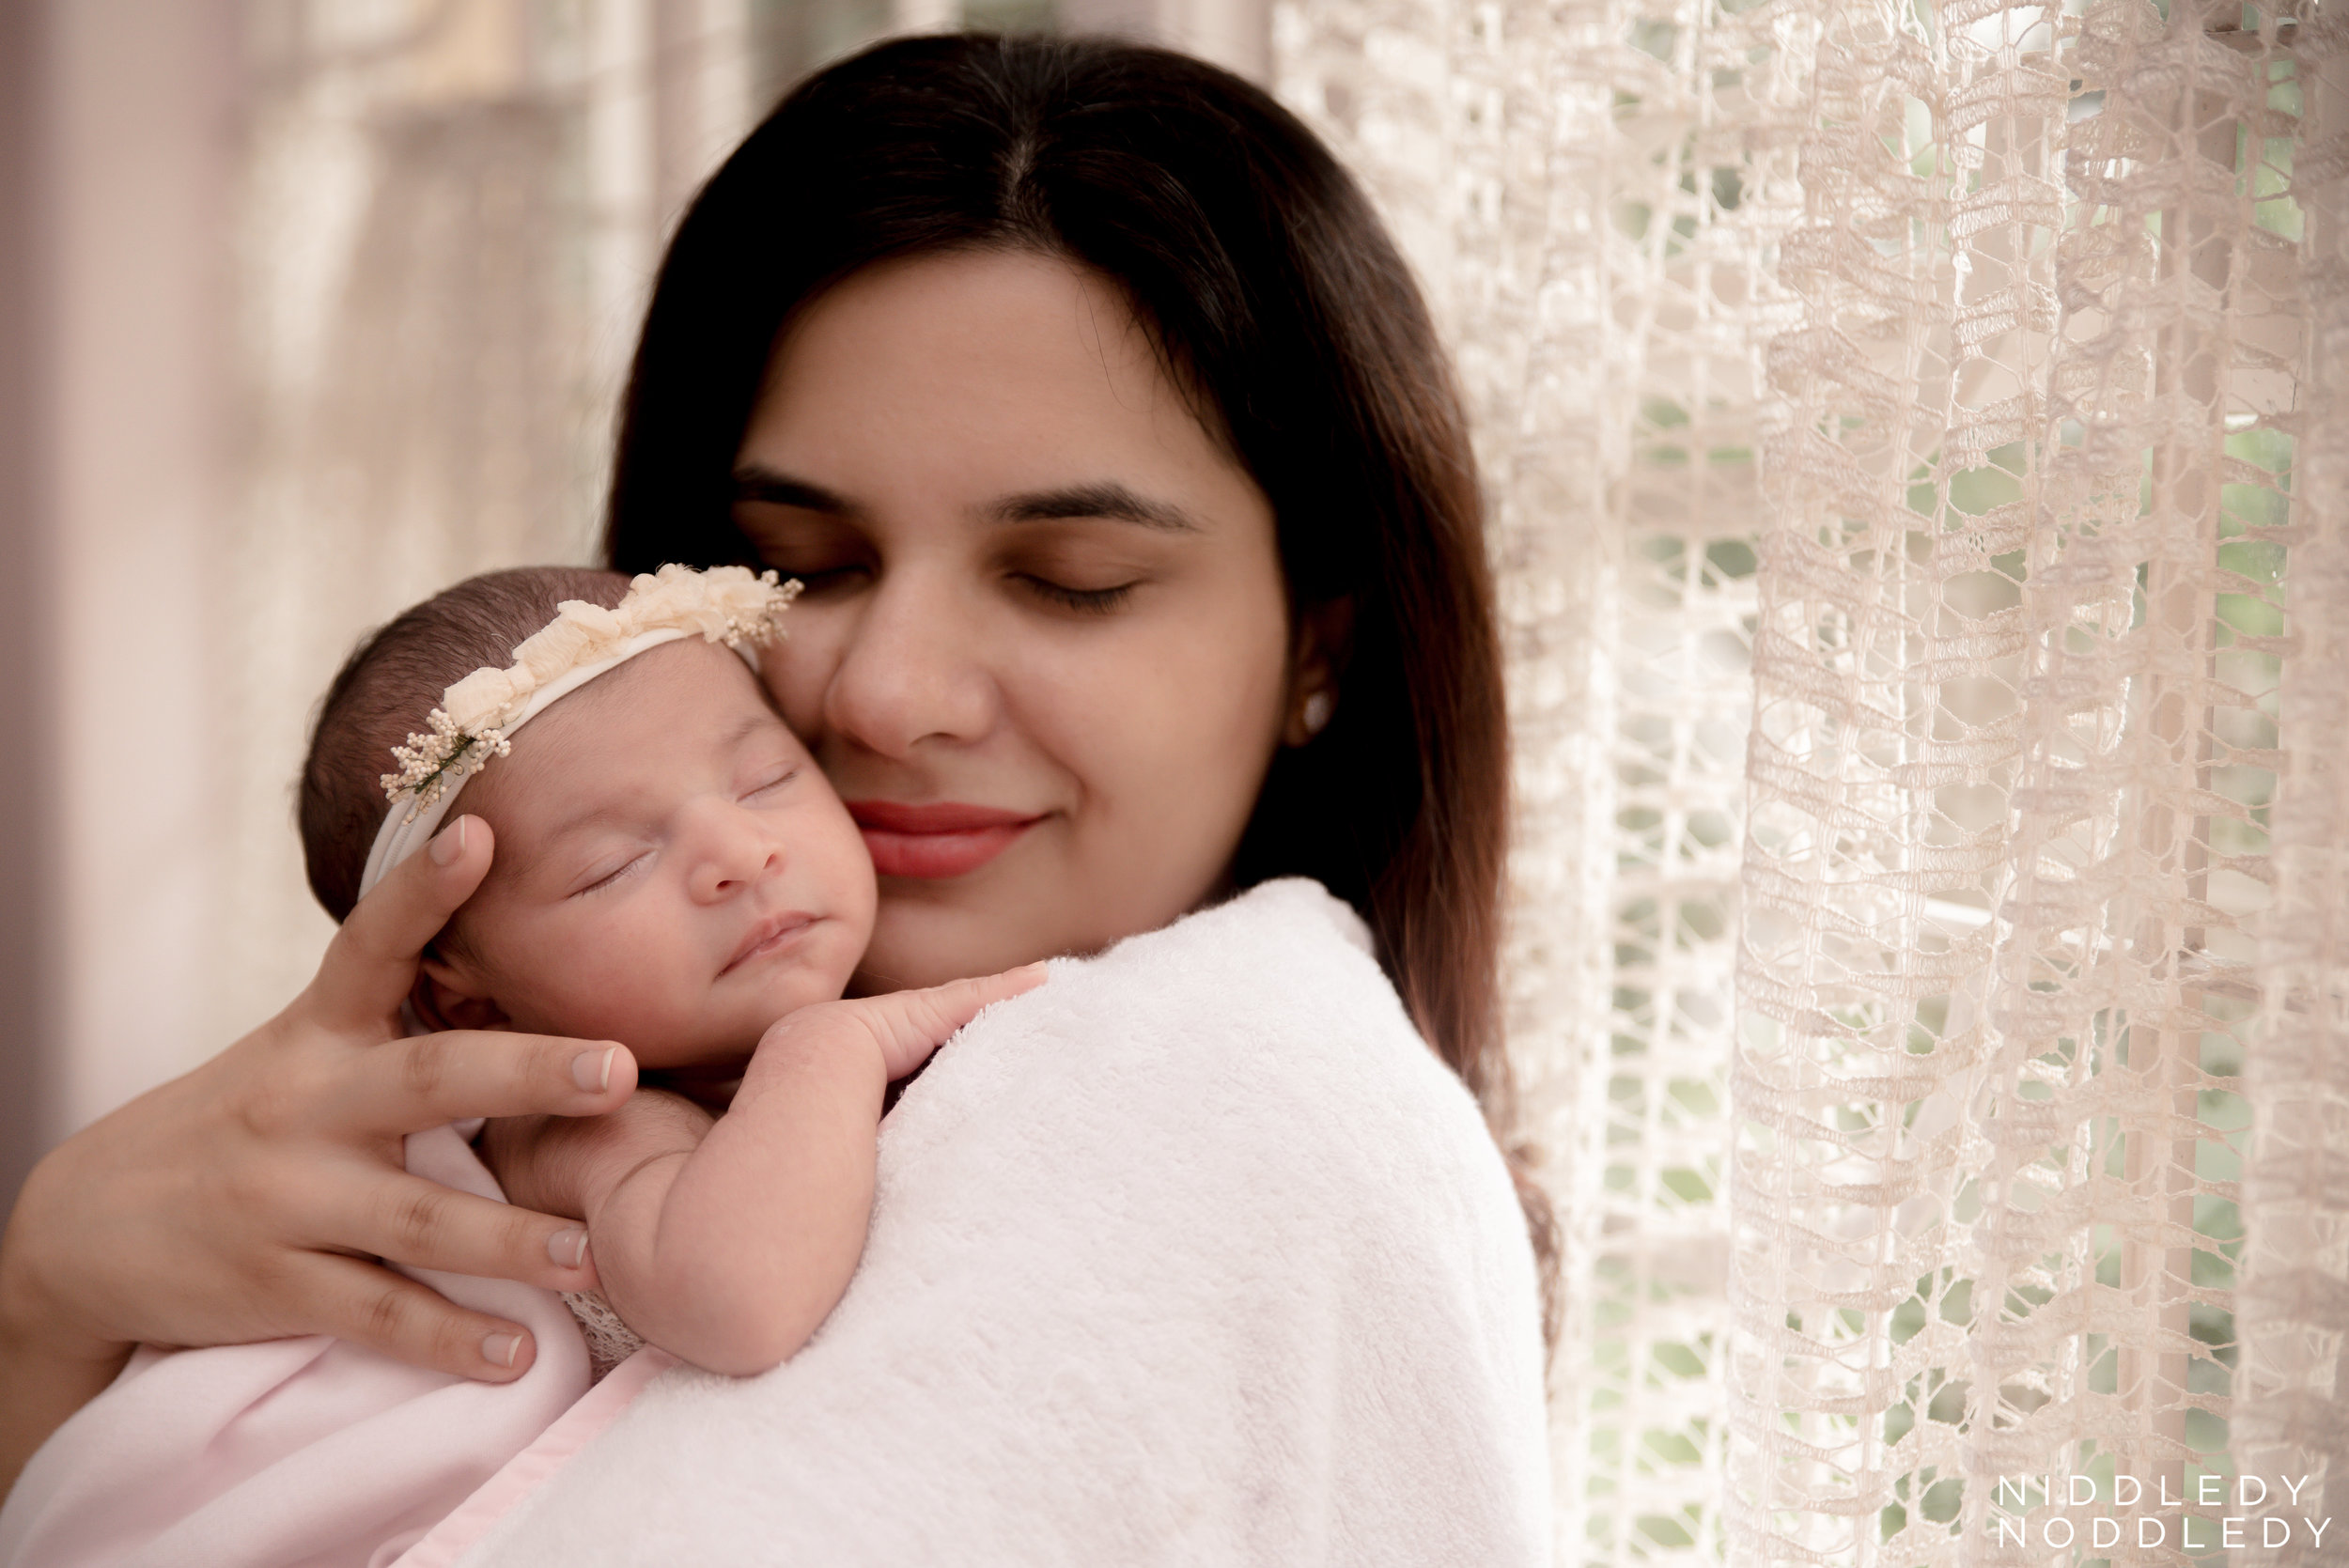 Yuvani Newborn Photoshoot ❤ NiddledyNoddledy.com ~ Bumps to Babies Photography, Kolkata - 05.jpg